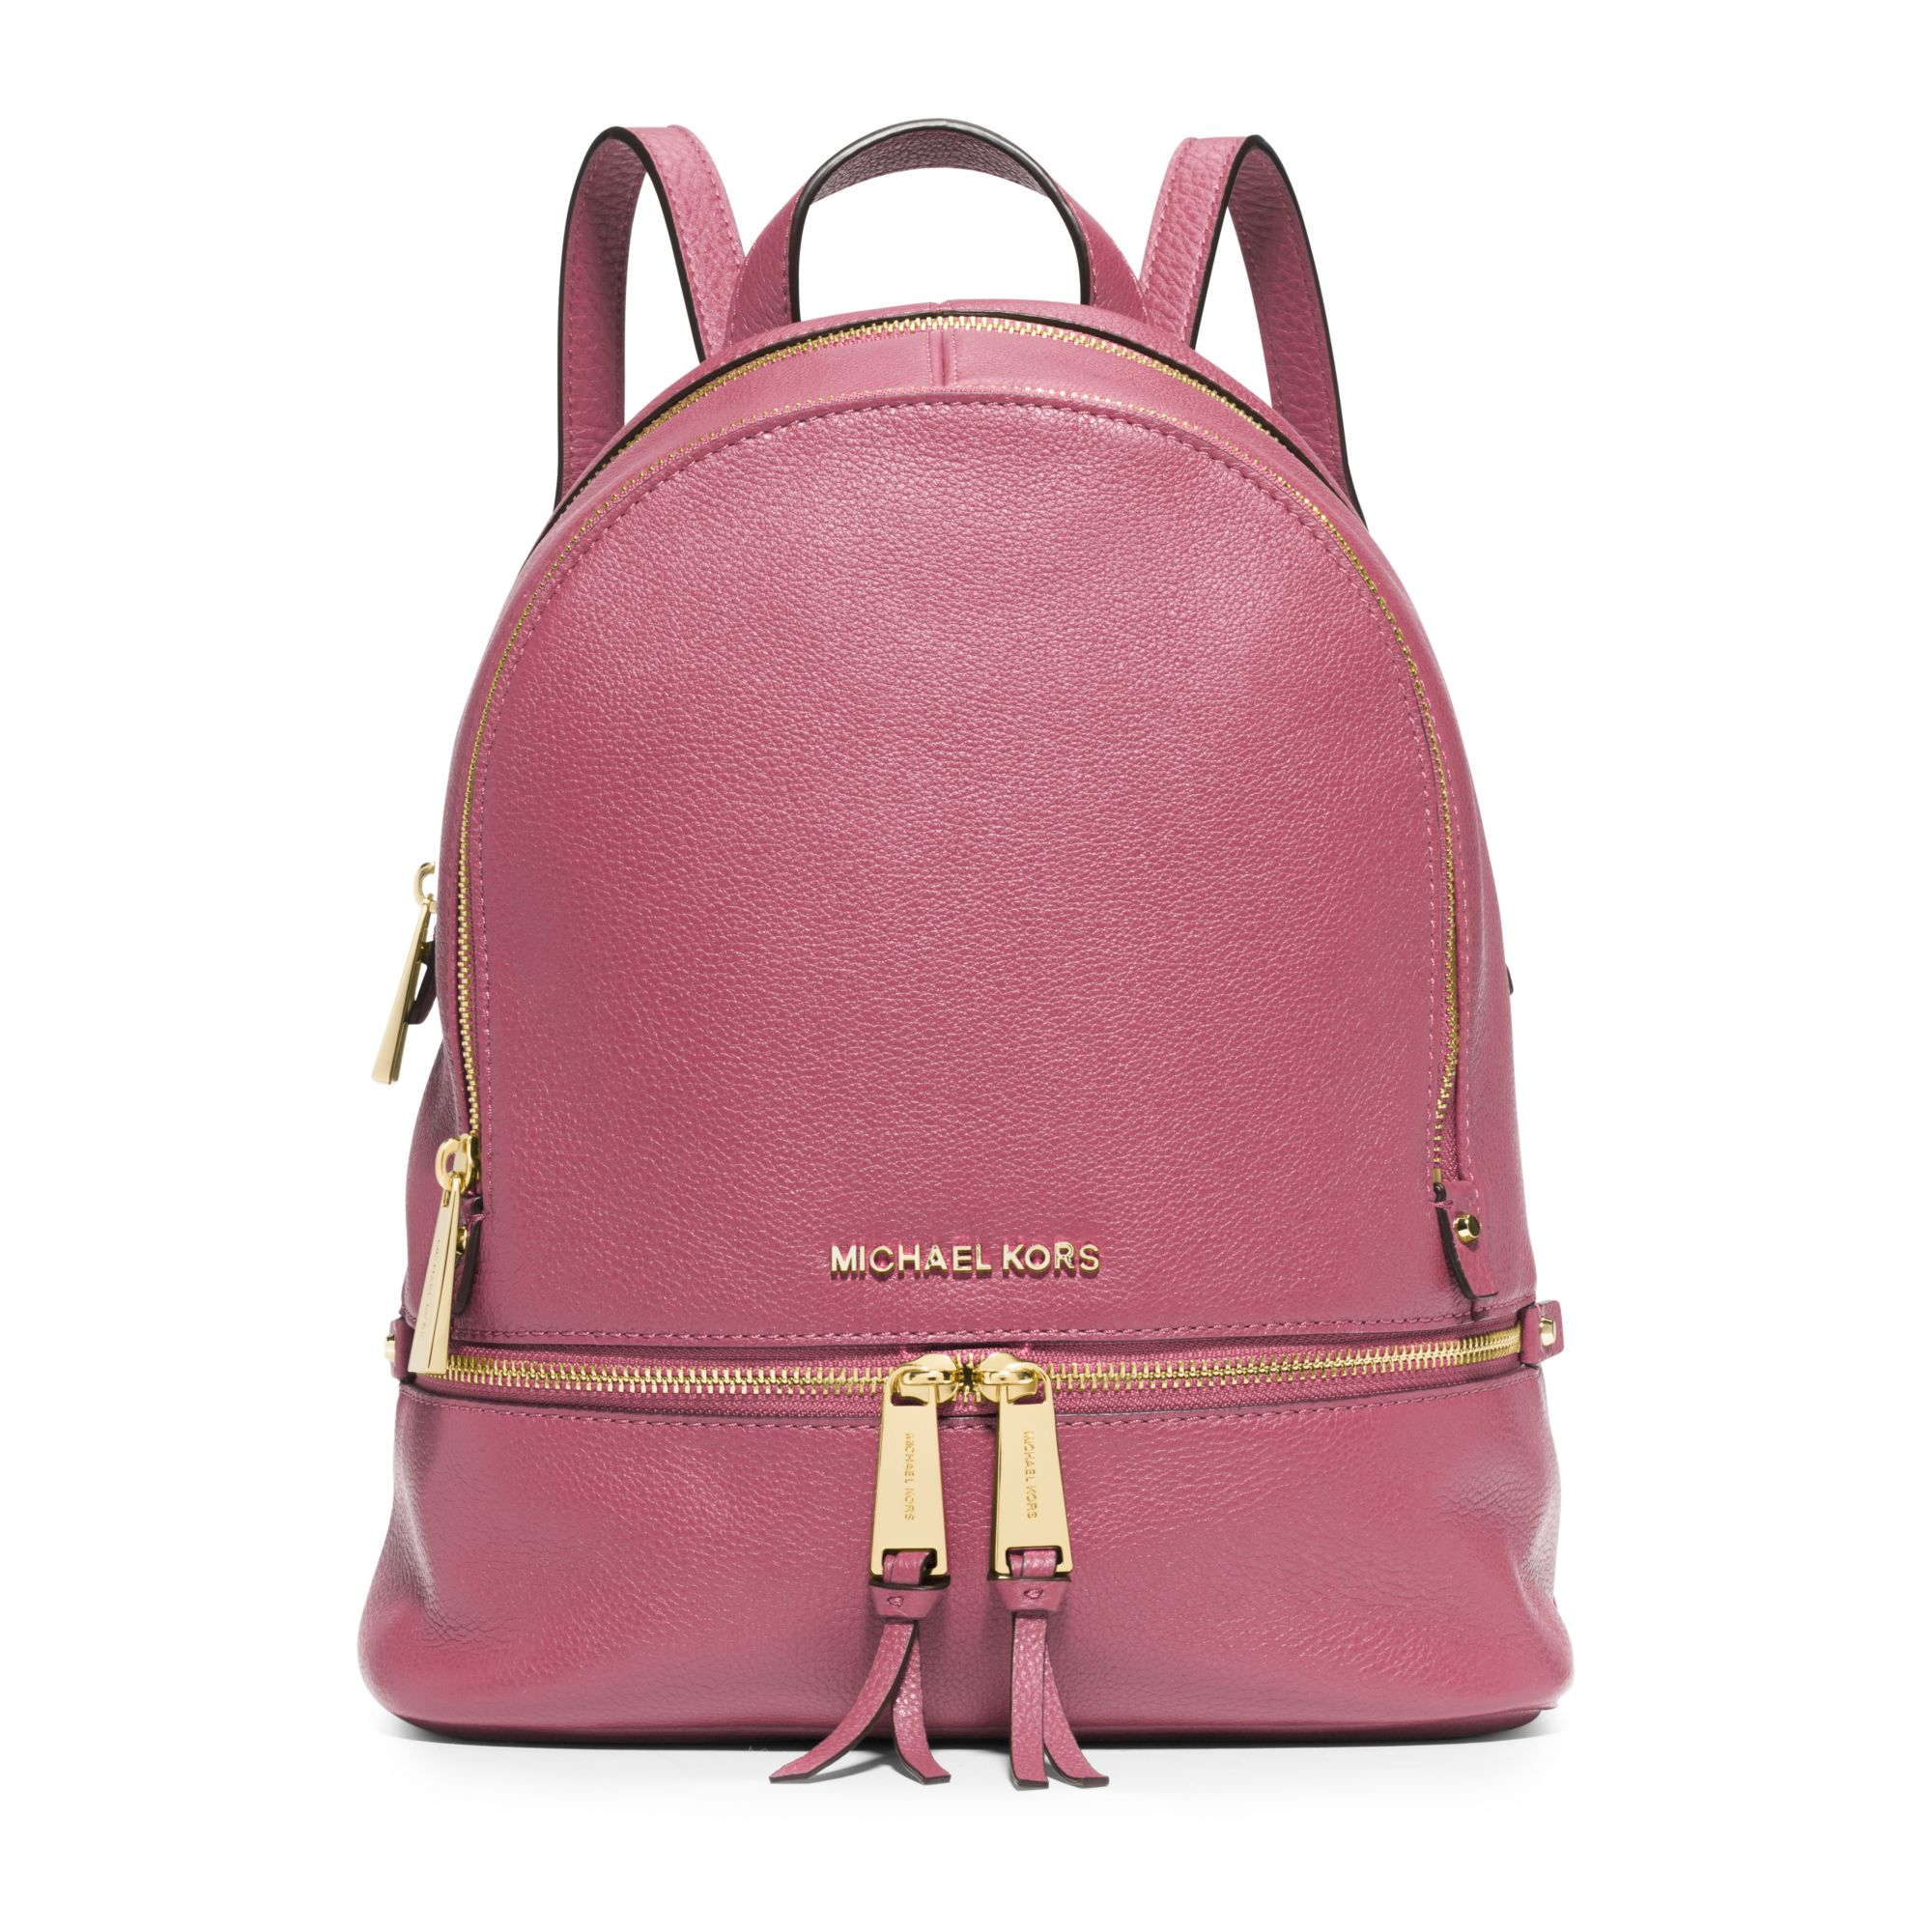 Michael kors Rhea Small Leather Backpack in Purple | Lyst